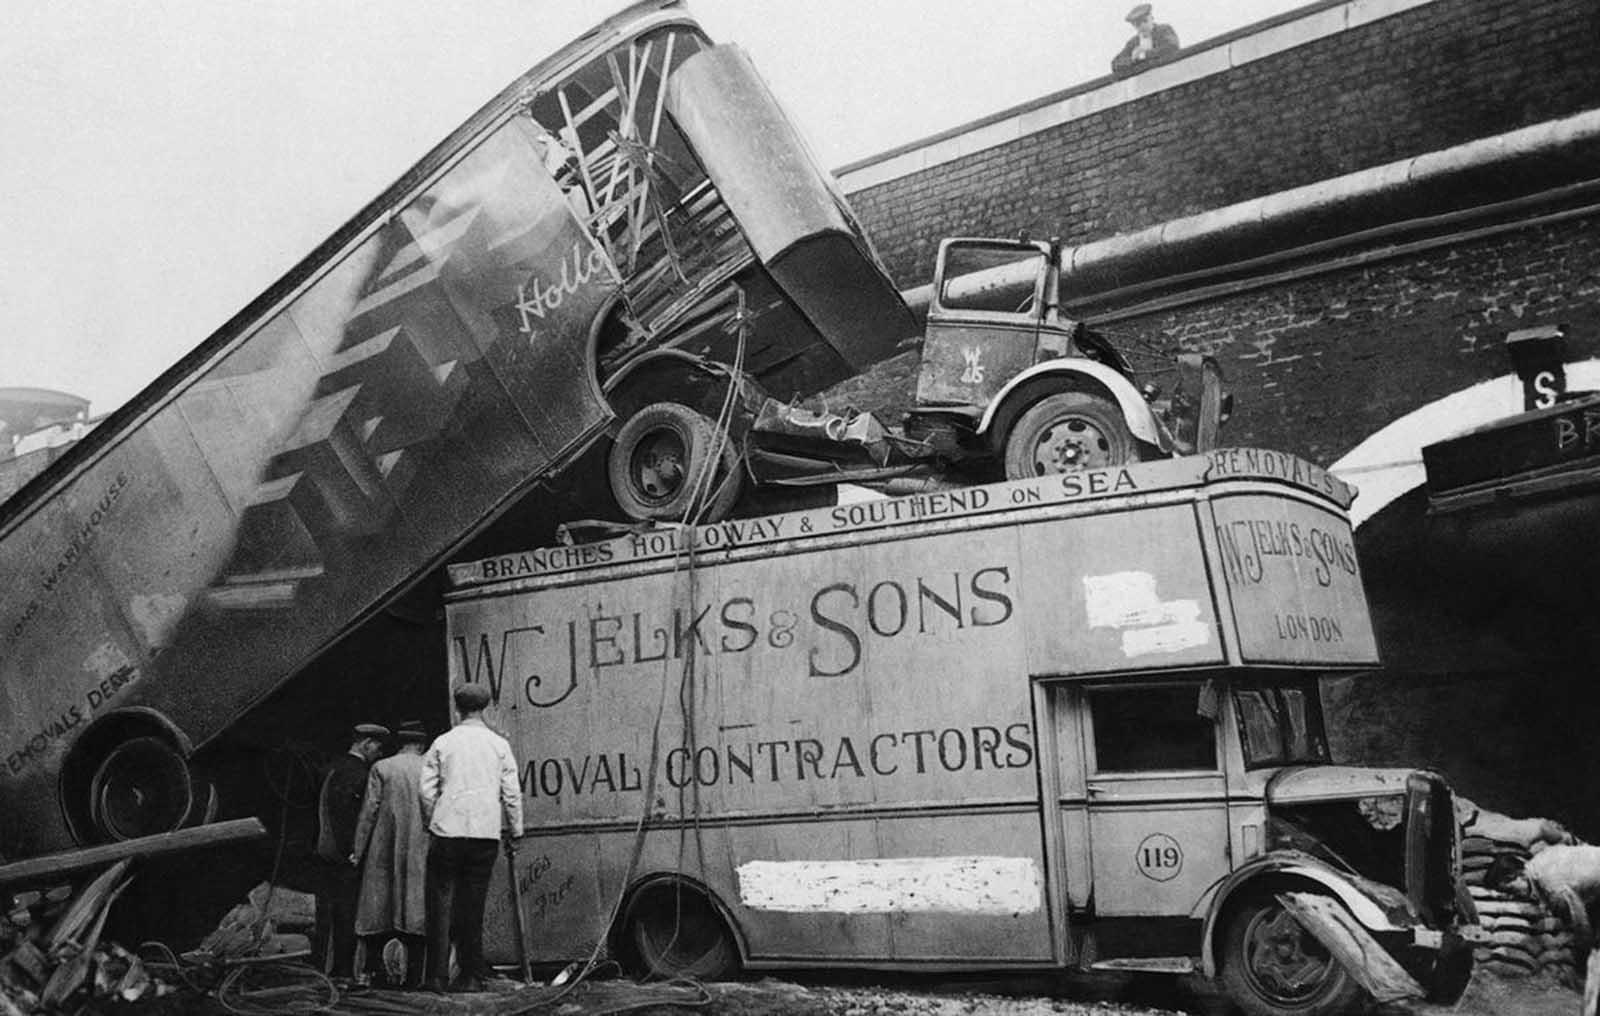 The force of a bomb blast in London piled these furniture vans atop one another in a street after a raid on December 5, 1940.